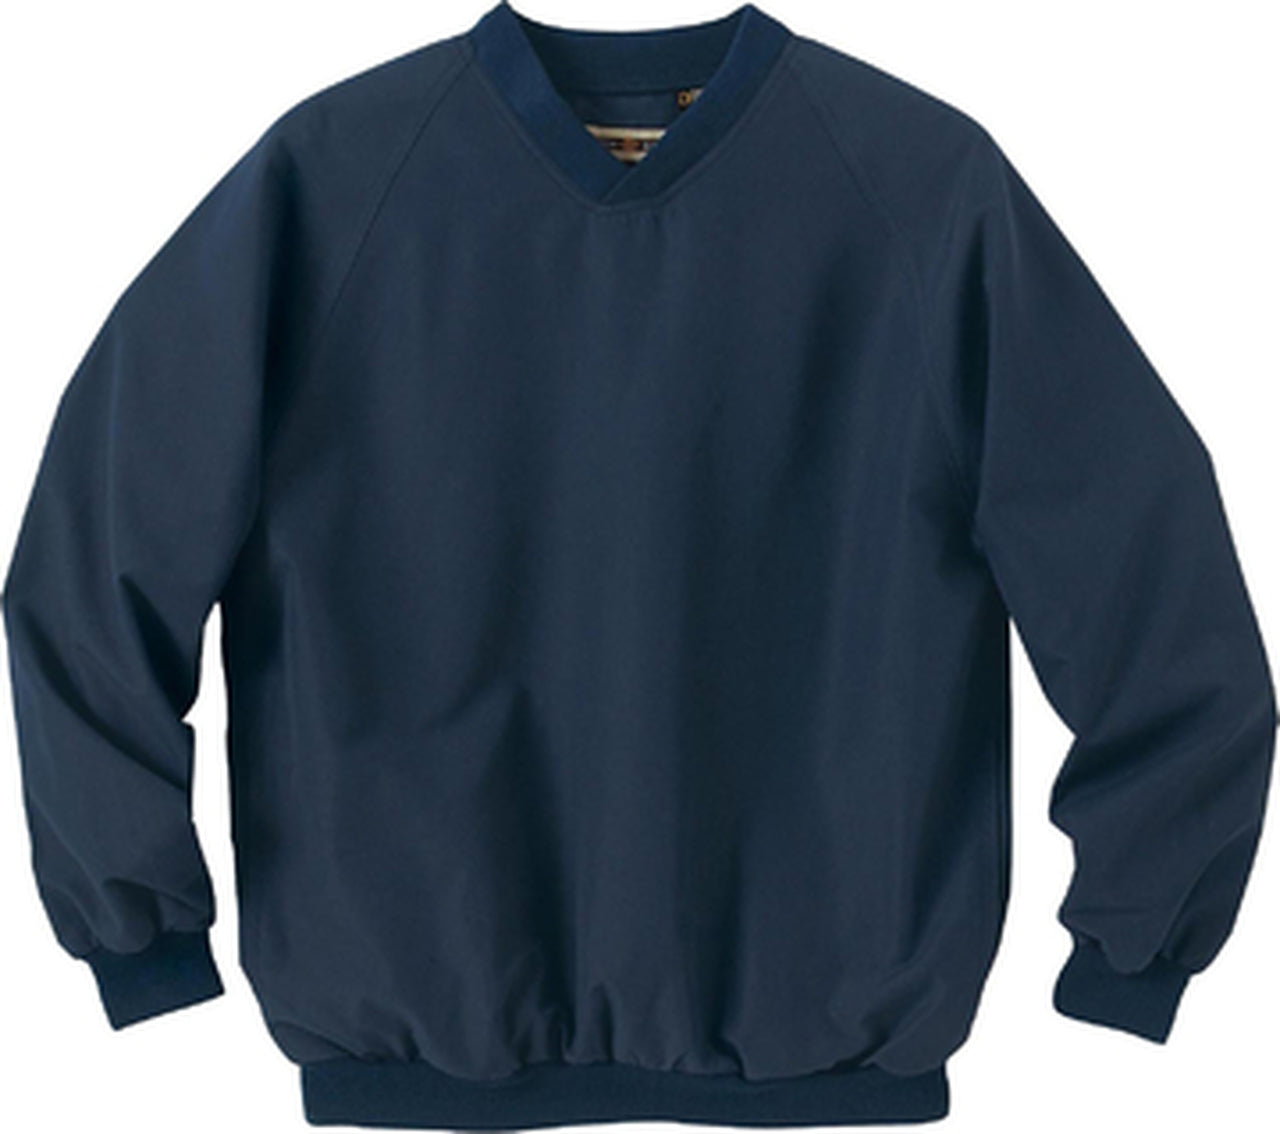 NORTH END MEN'S MICRO PLUS RAGLAN WINDSHIRT